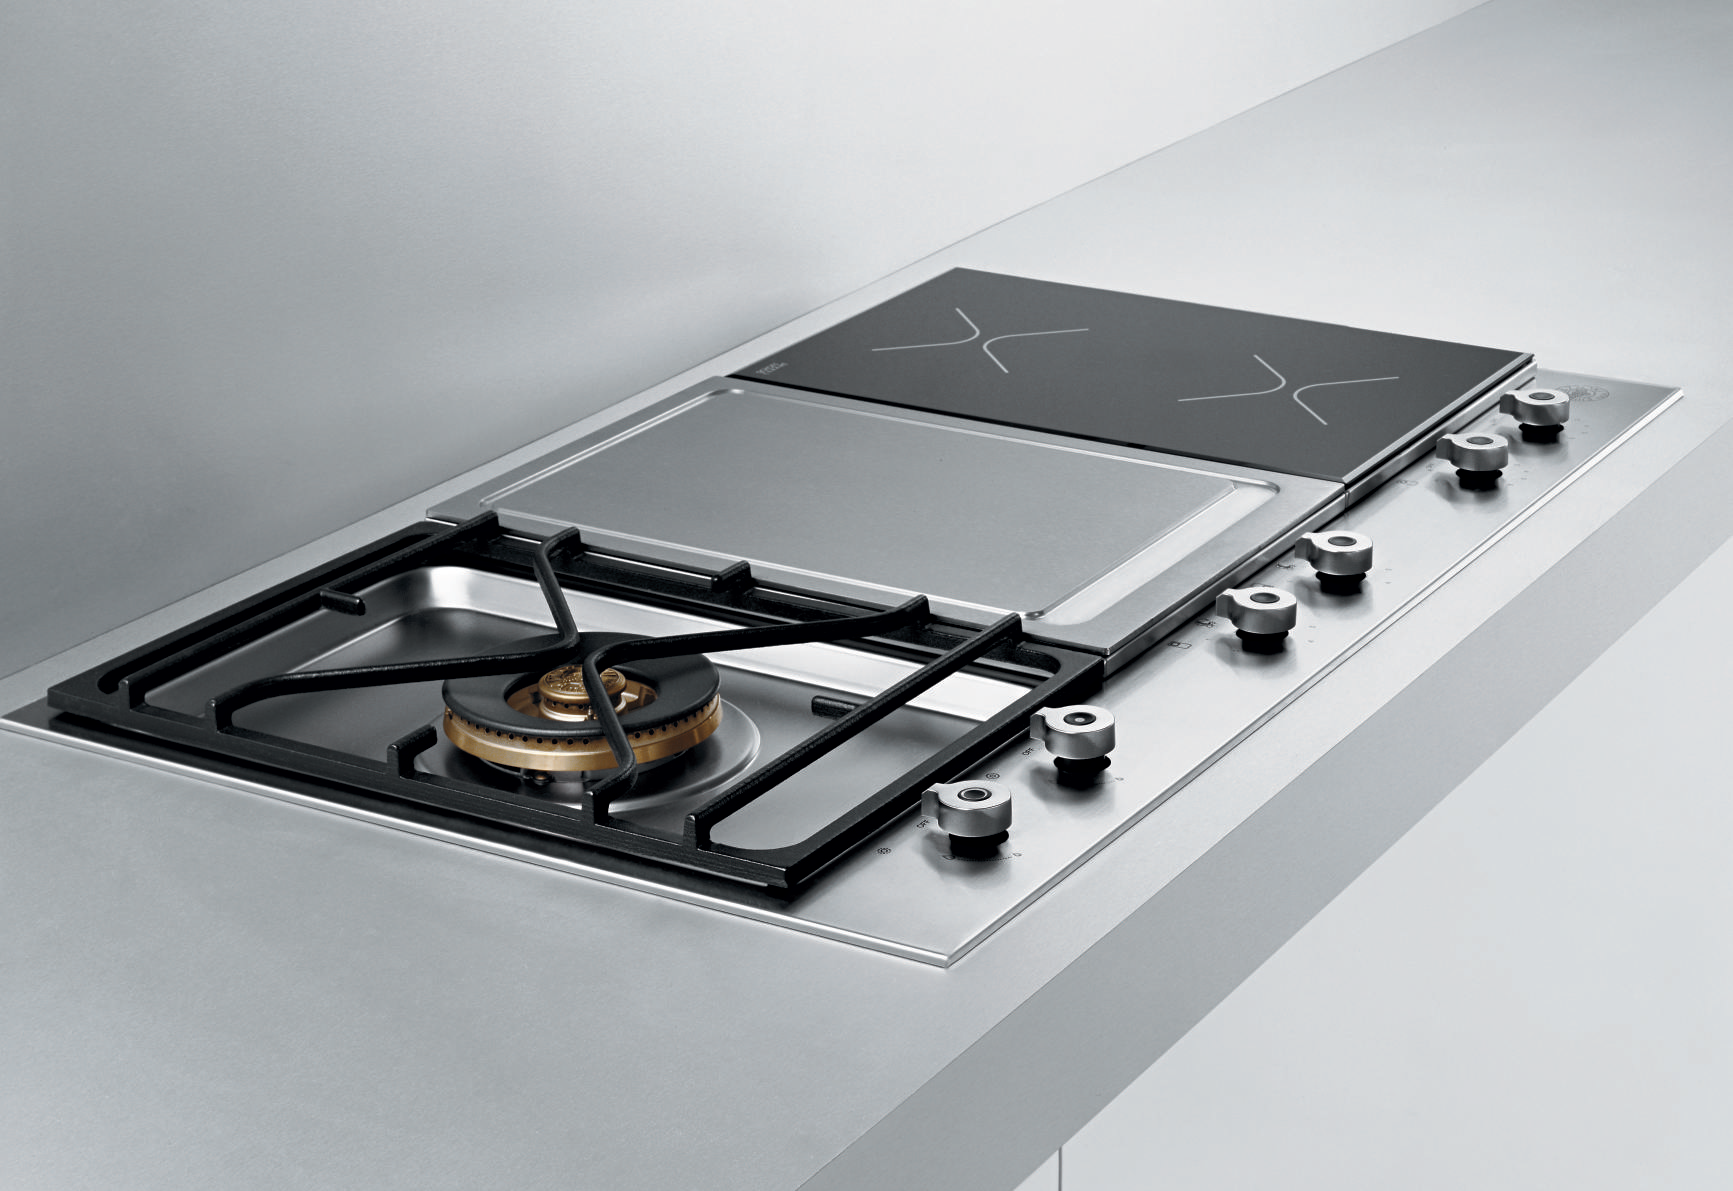 Combination Gas And Induction Cooktop Zef Jam